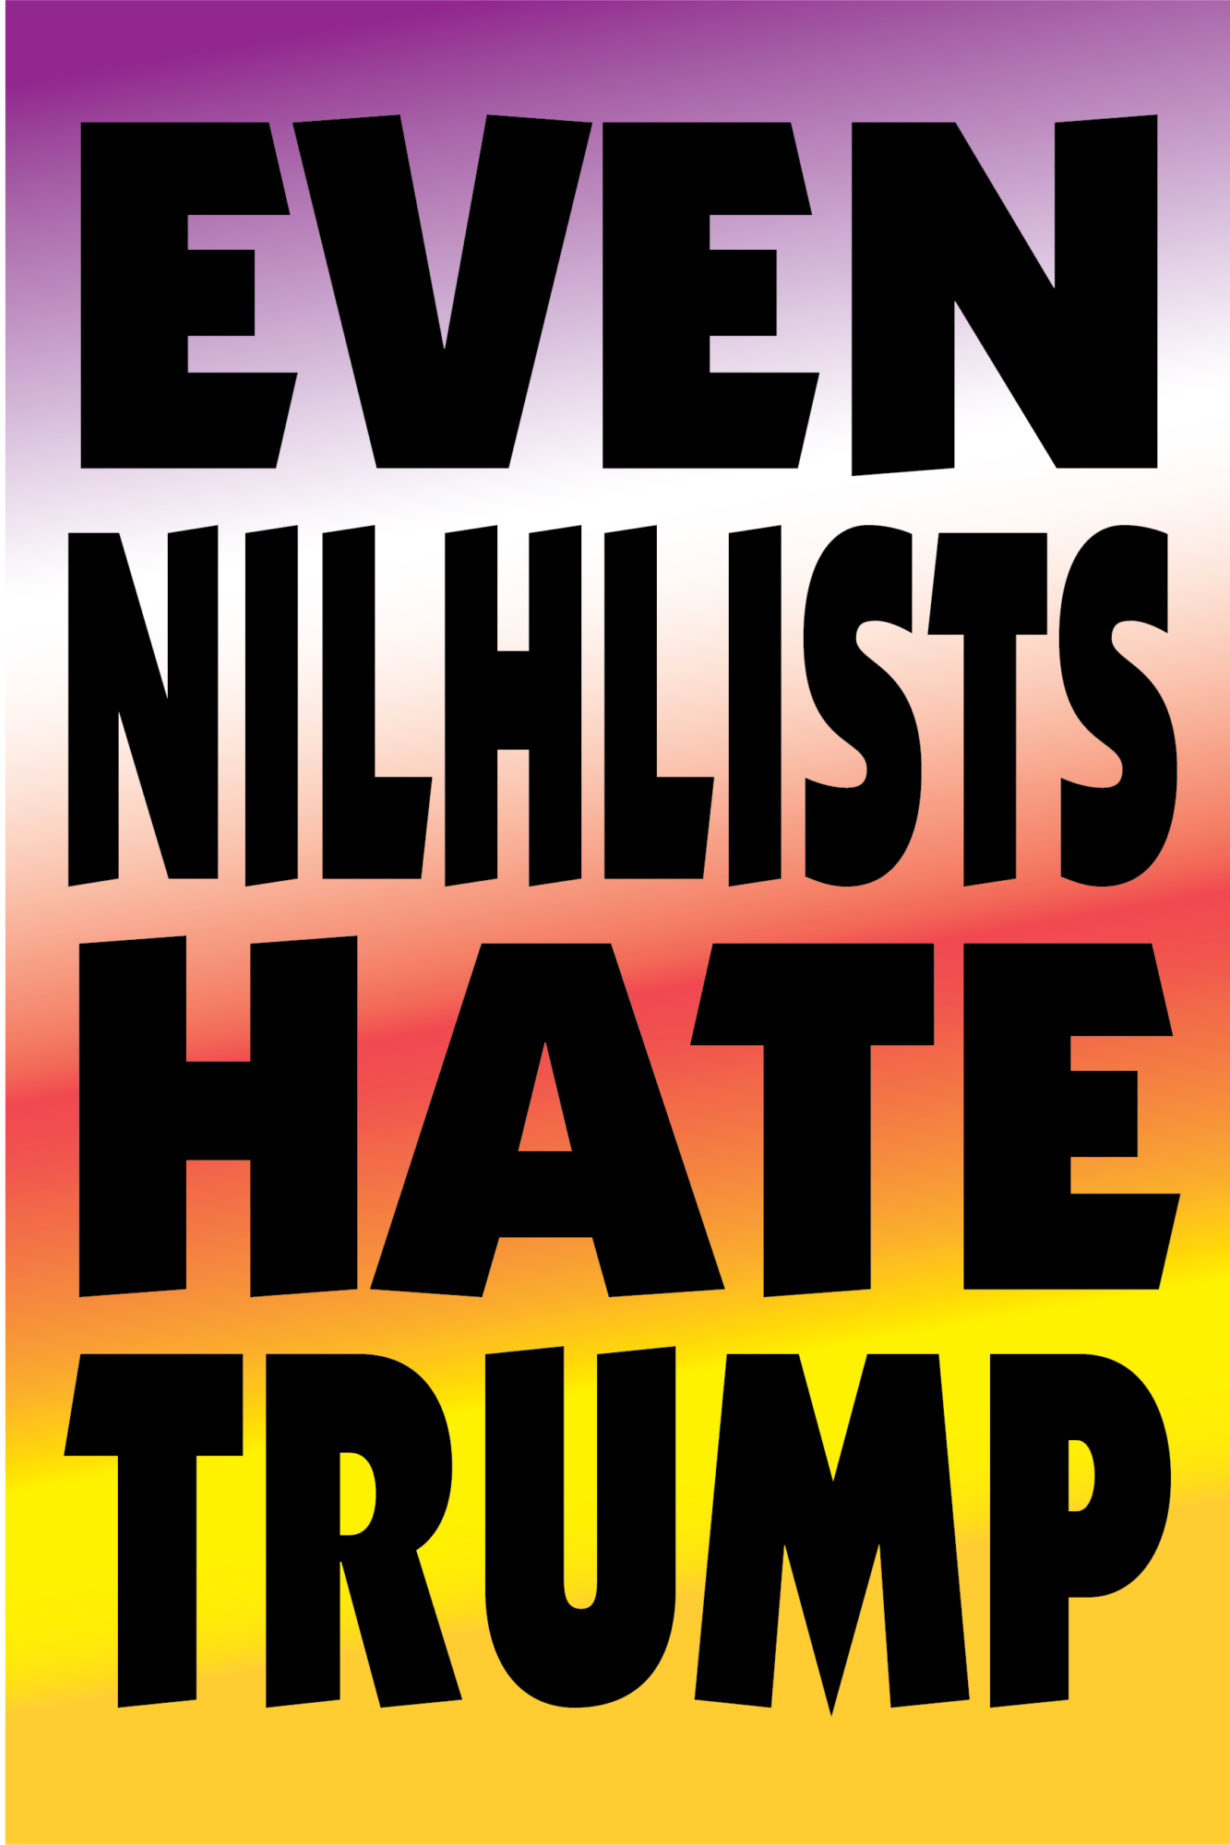 NP_26_50_2017_Even-Nilhlists-Hate-Trump.jpg